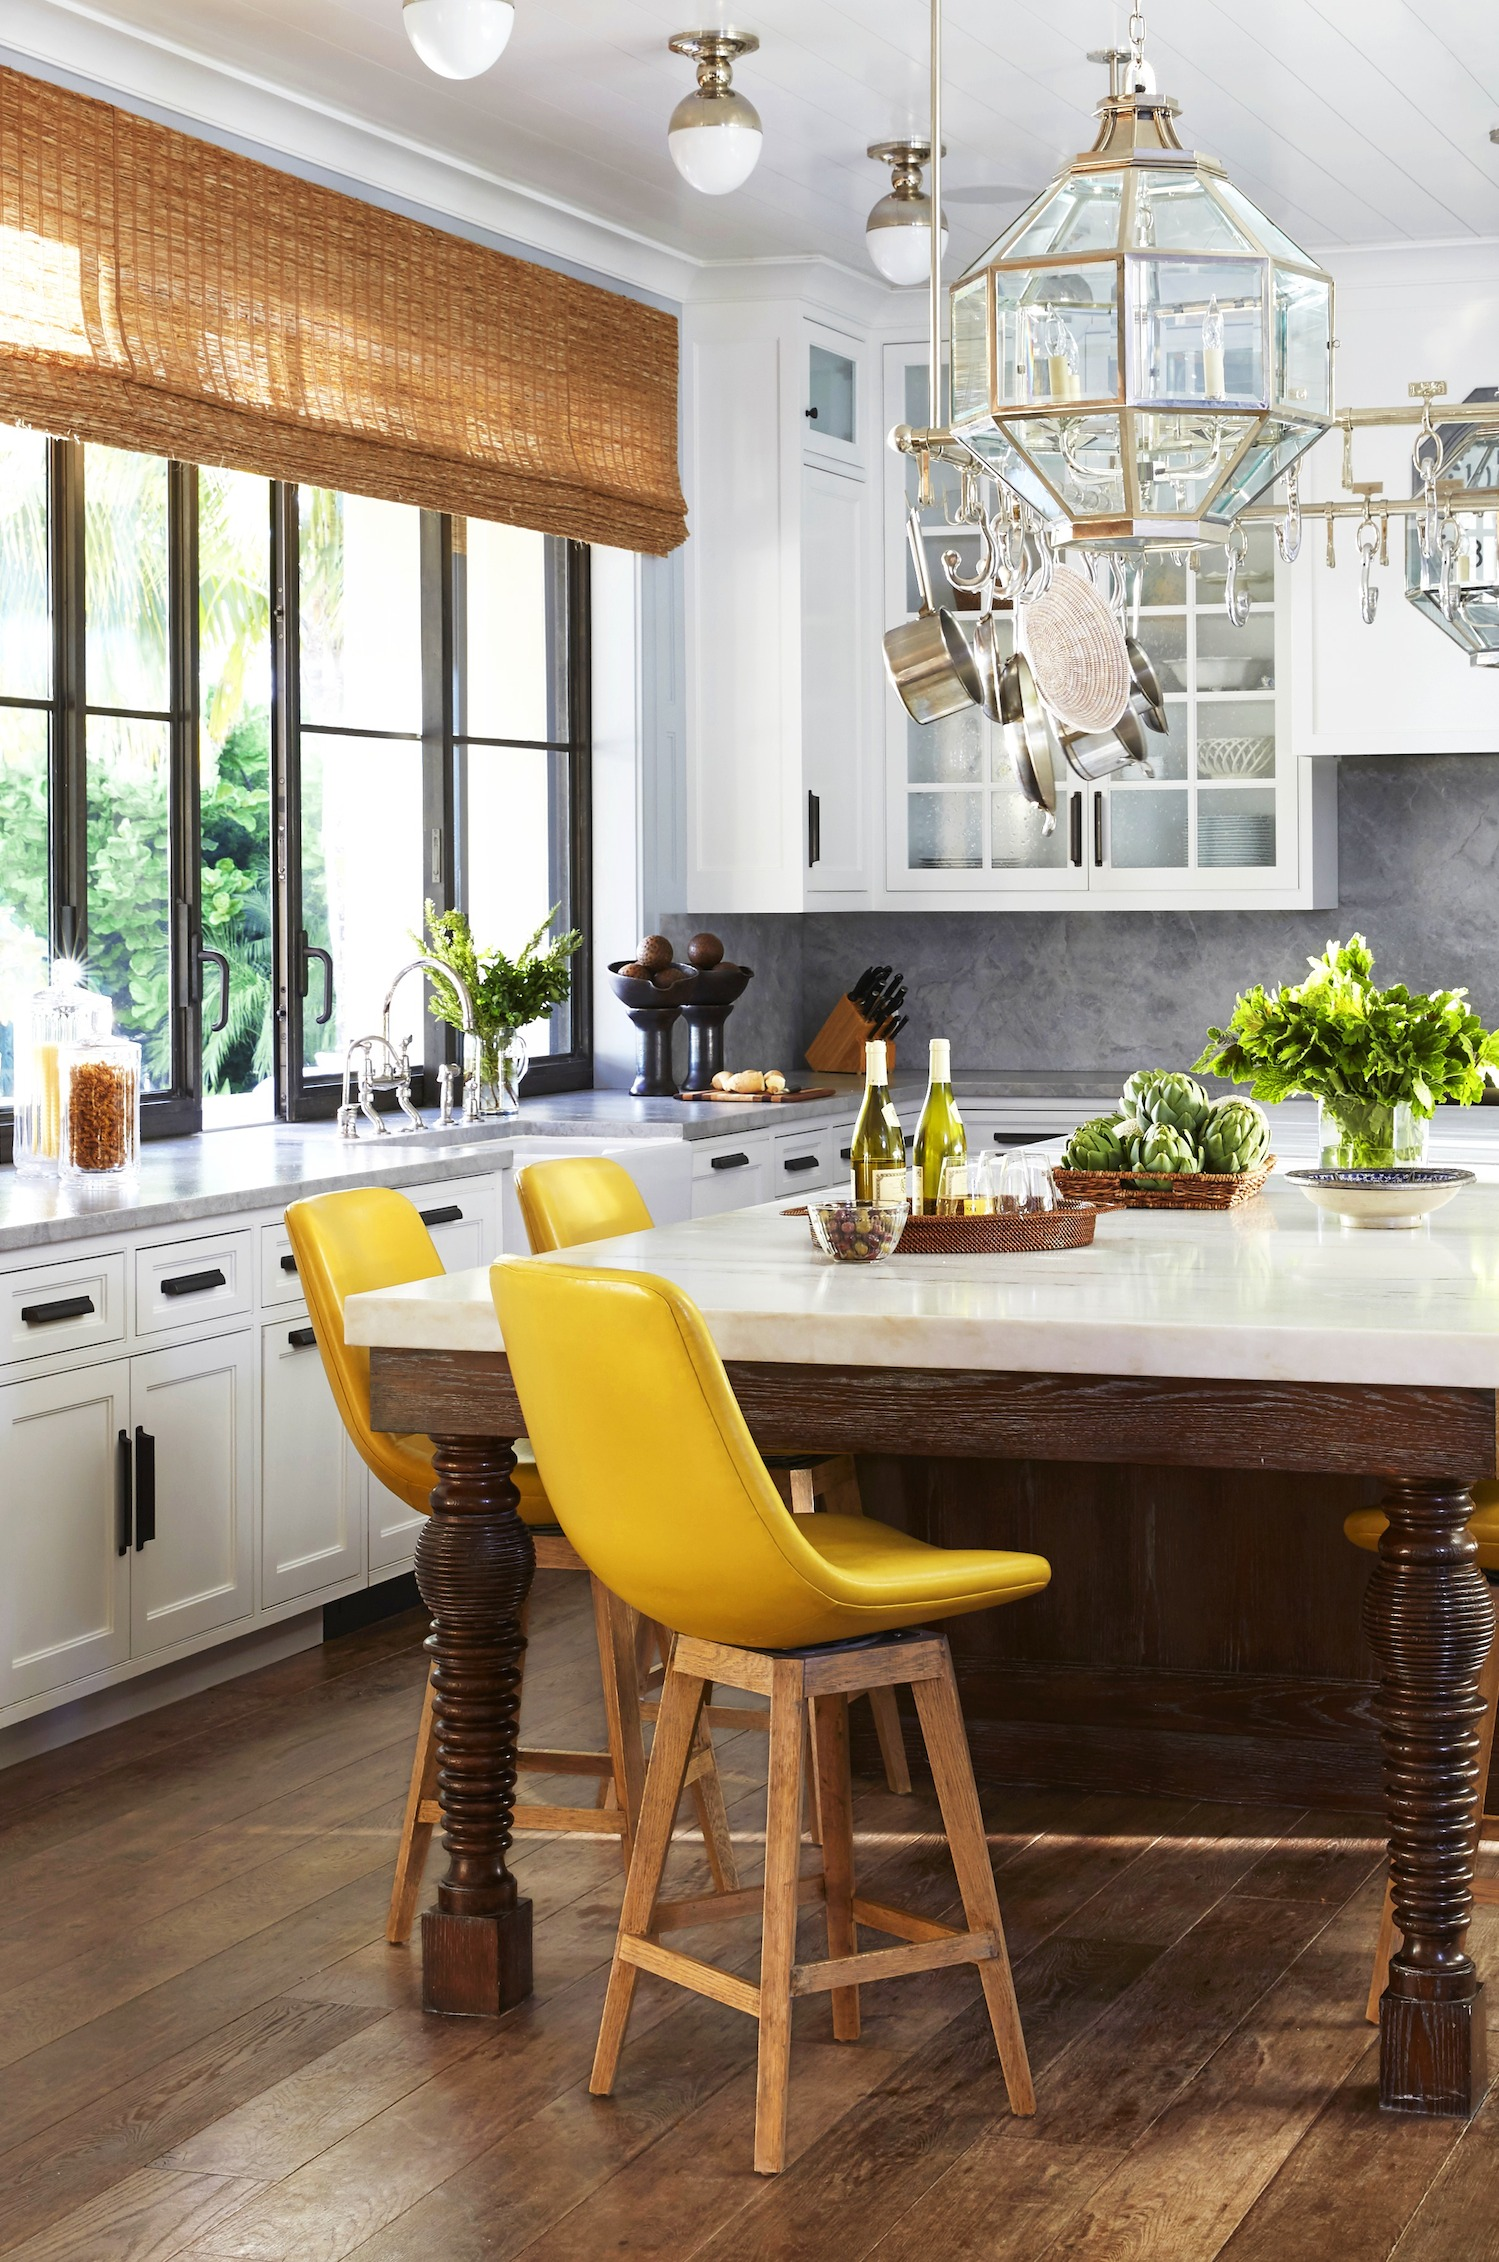 40 Kitchen Ideas, Decor and Decorating Ideas for Kitchen ... on Kitchen Decoration Ideas  id=62814